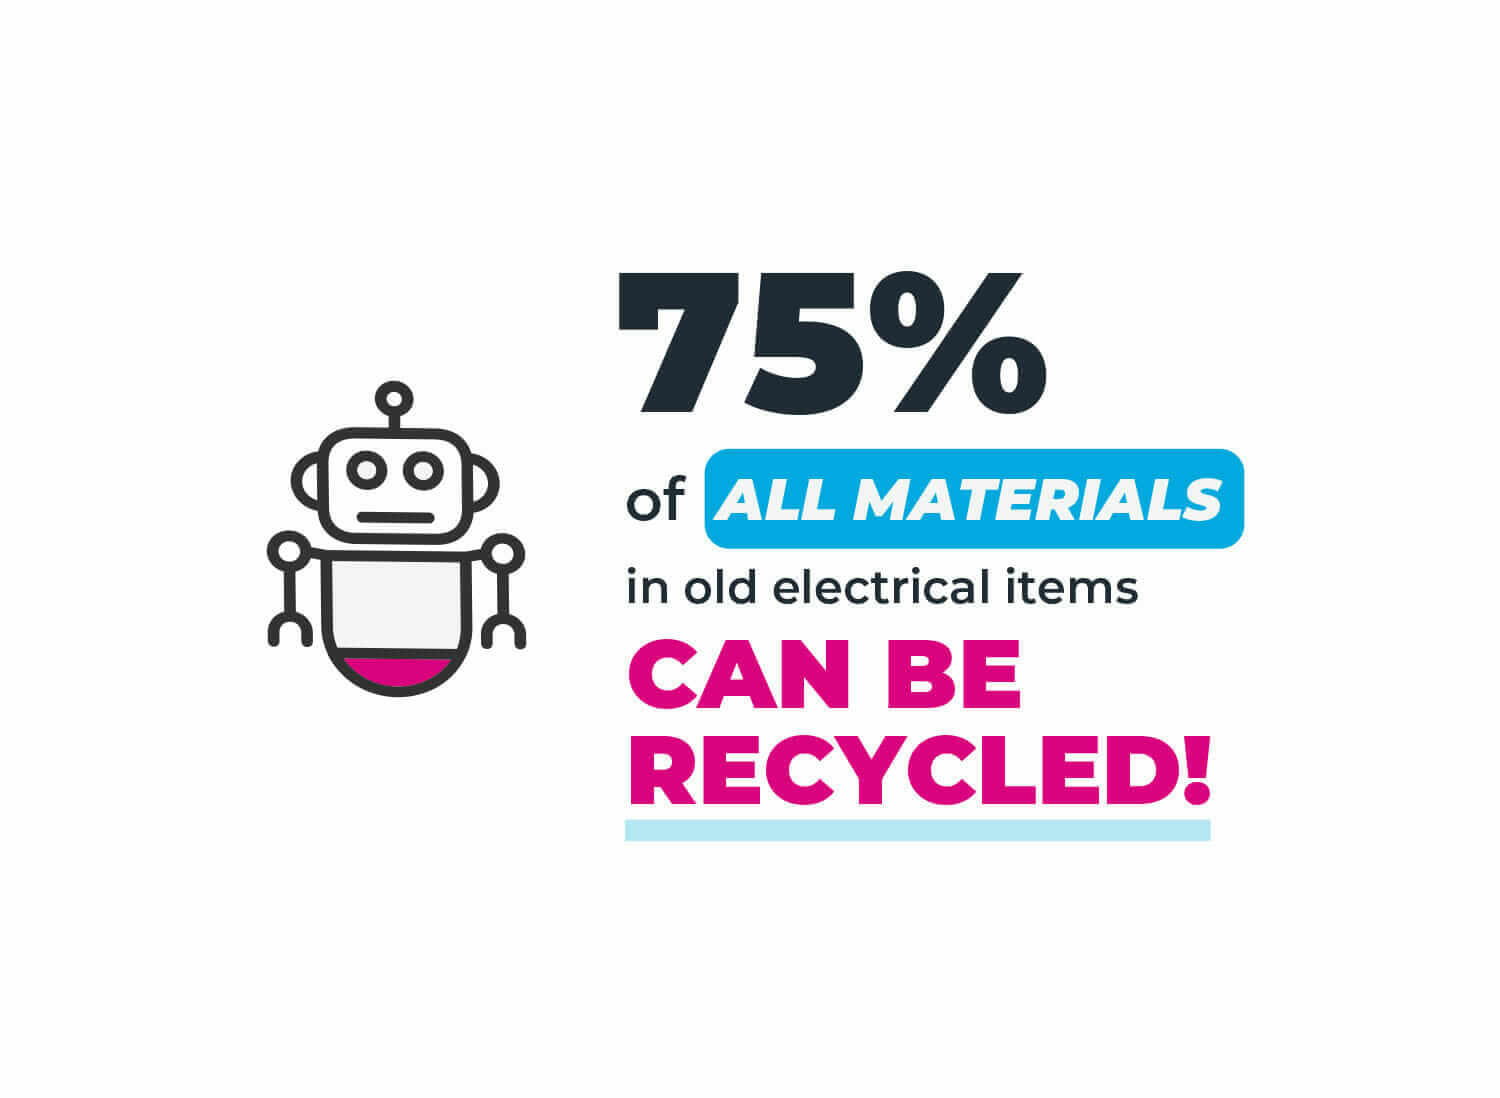 An infographic showing that 75% of old electrical items can be recycled